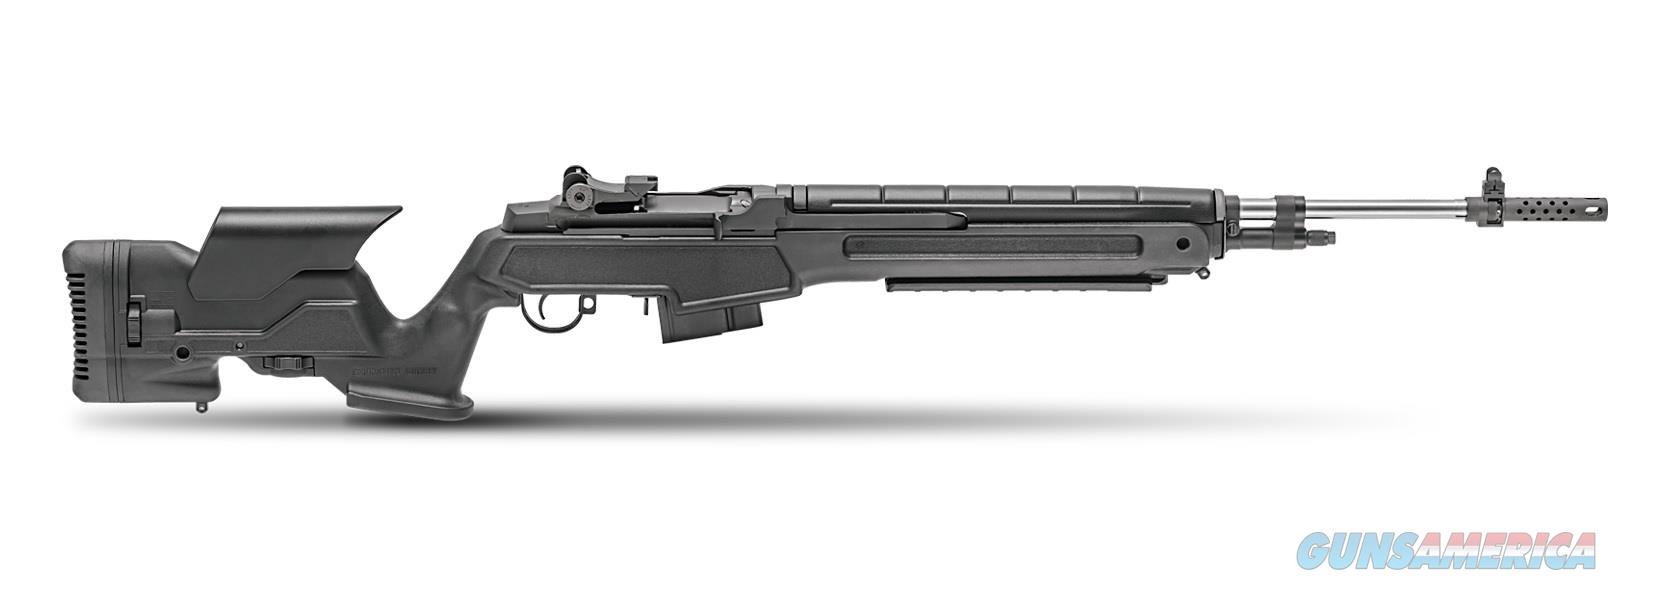 "Springfield M1A Loaded National Match 6.5 Creed 22"" MP9826C65   Guns > Rifles > Springfield Armory Rifles > M1A/M14"